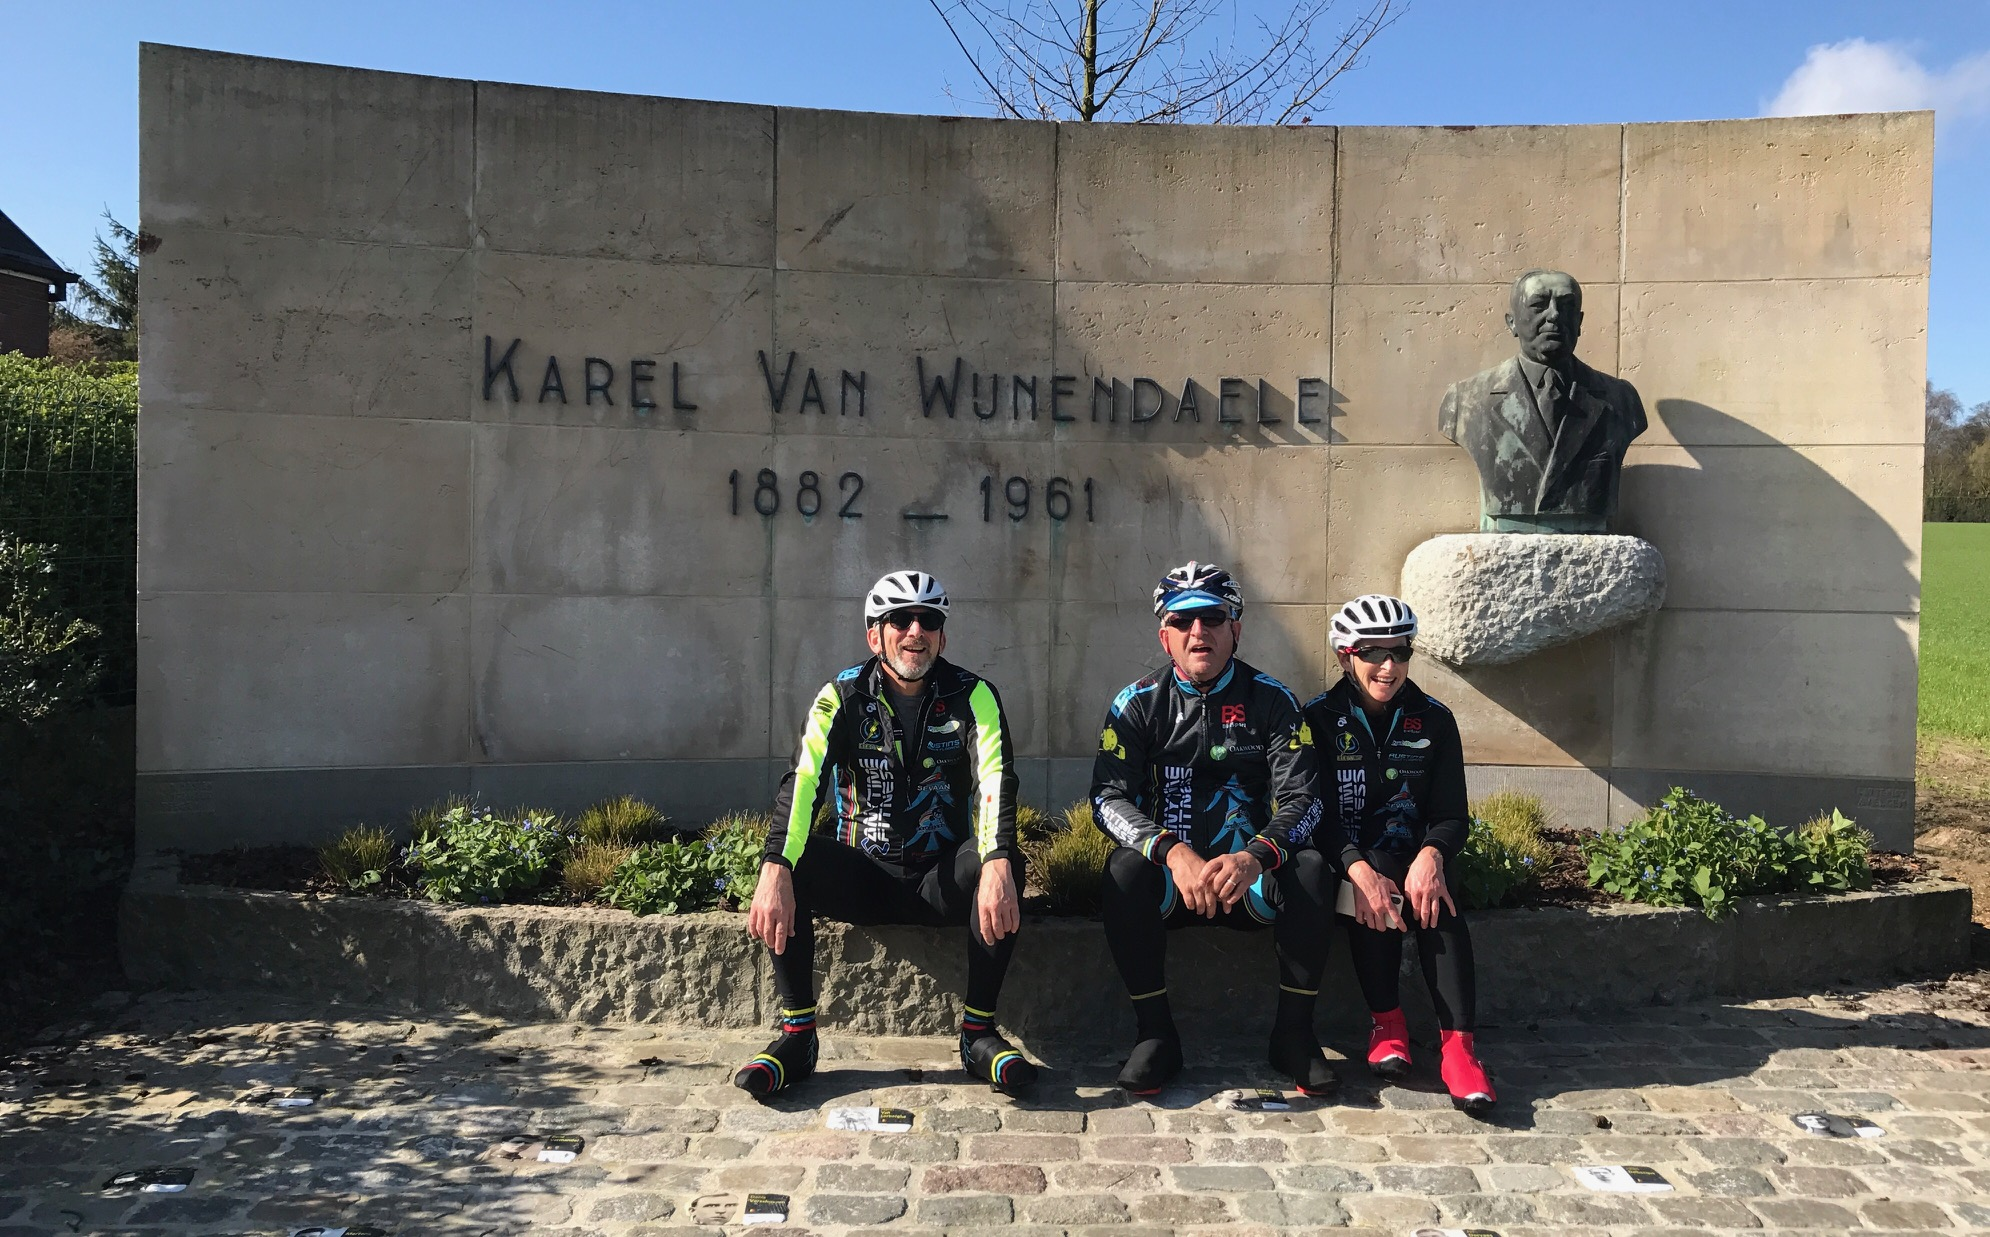 Flanders 2017 - Karel Van Wijnendaele conceived the Ronde Van Vlaanderen (Tour of Flanders) and a monument is dedicated to his memory at the top of the Old Kwaremont cobbled climb. The winners of each Ronde have their image on their own small cobble in front of the KVW monument.